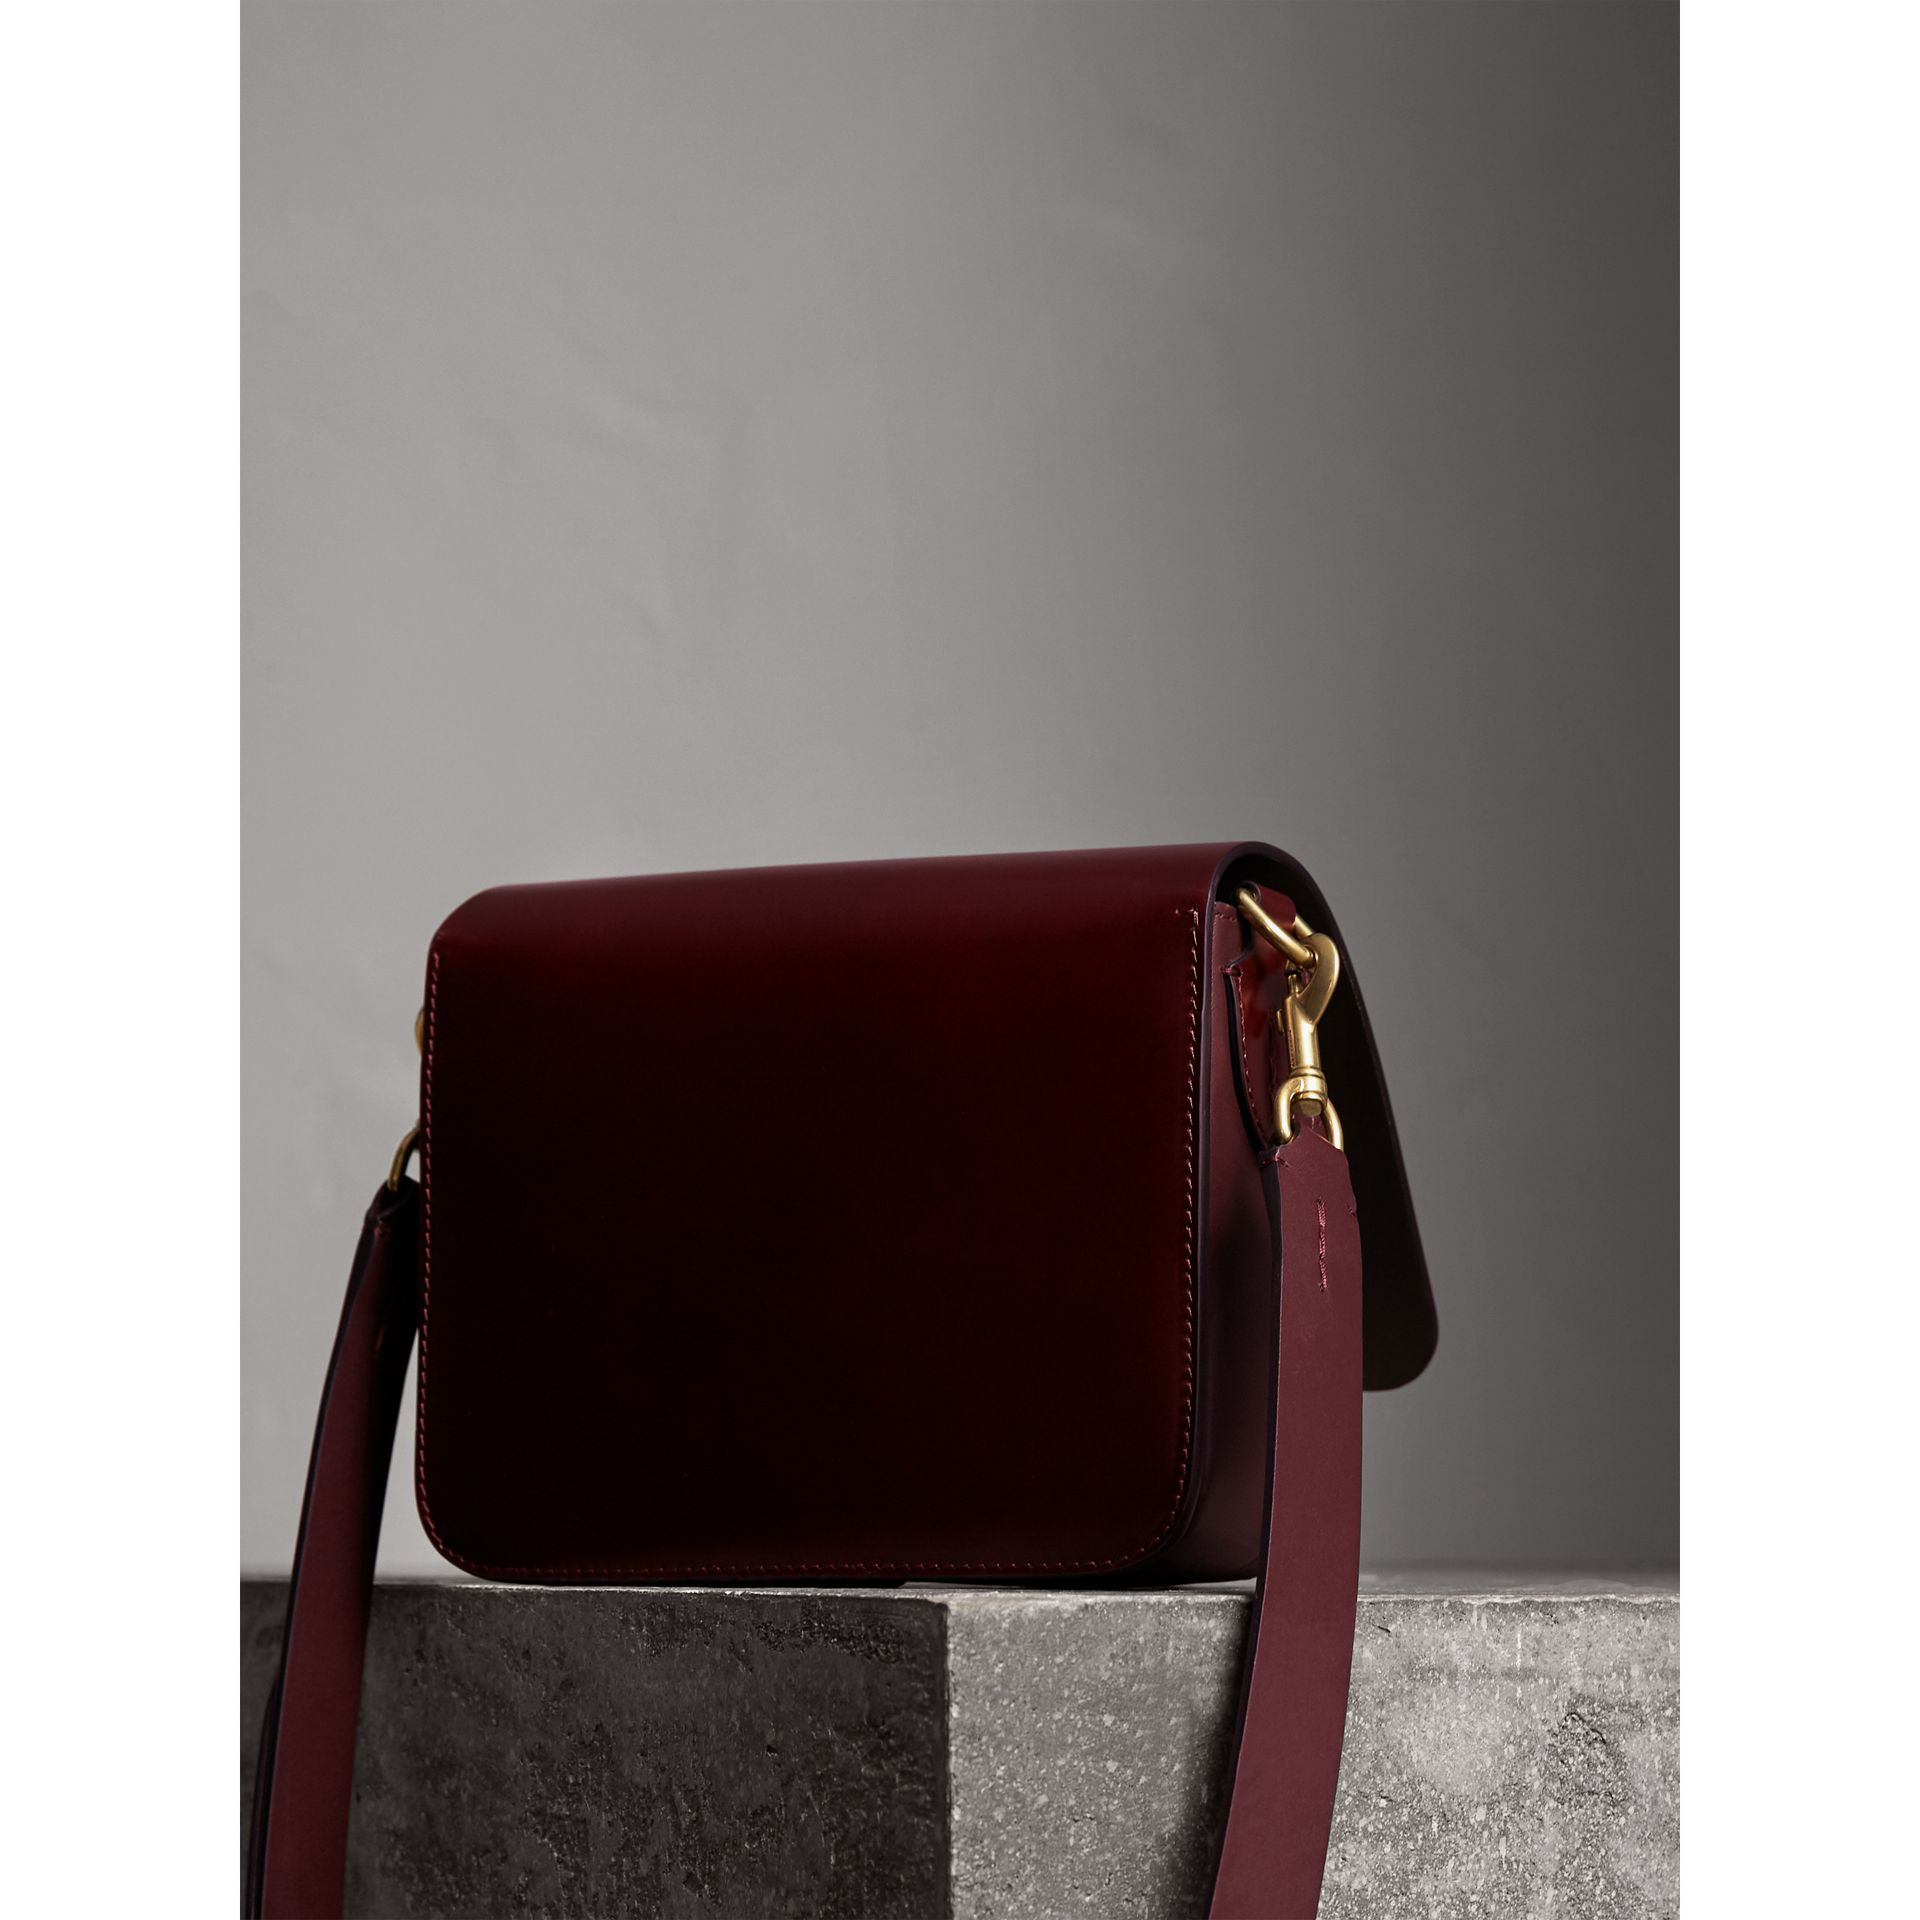 The Square Satchel in Bridle Leather in Deep Claret - Women | Burberry Hong Kong - gallery image 3